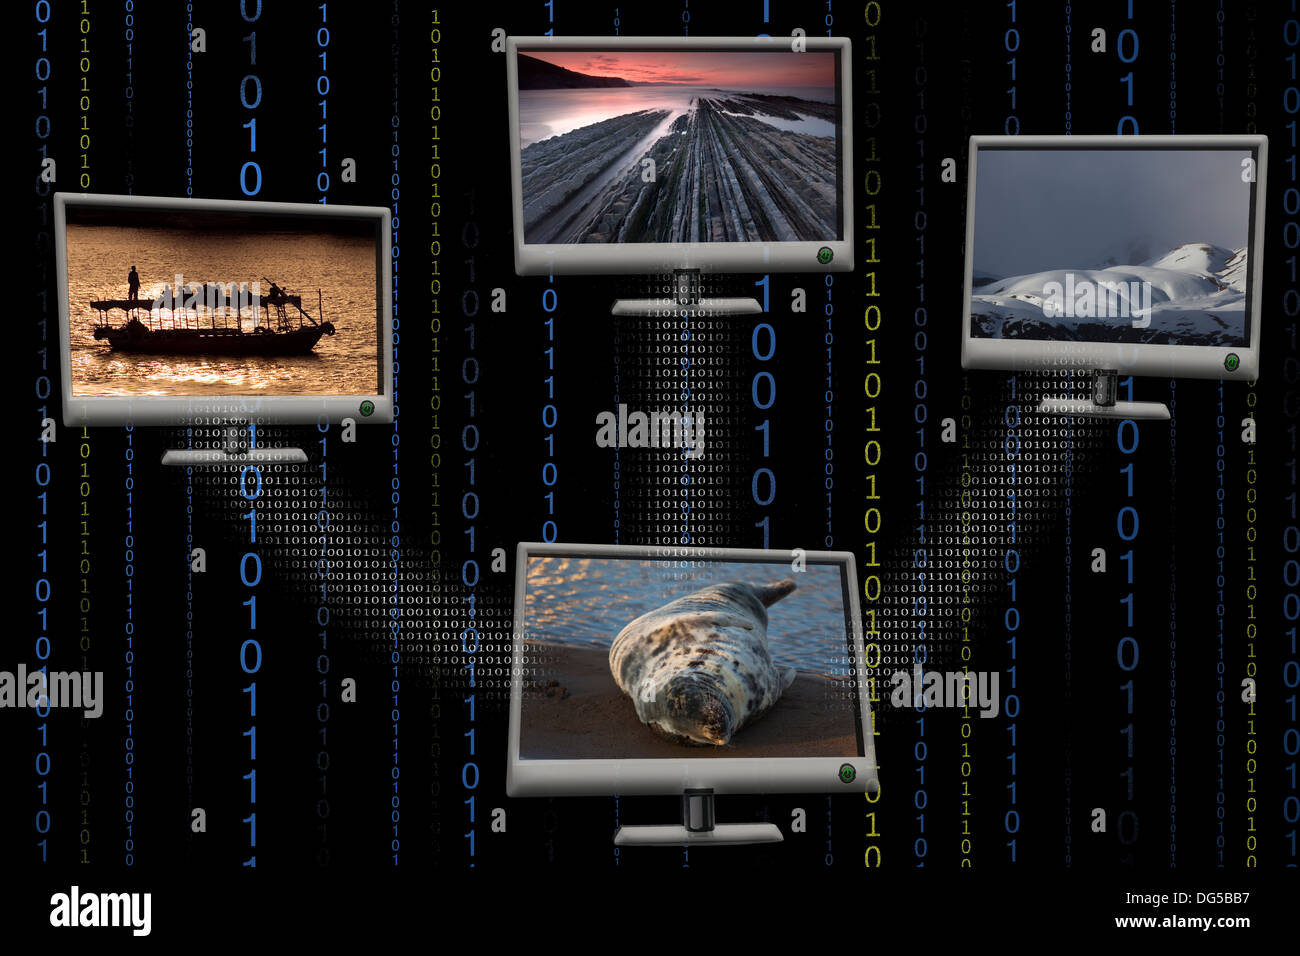 Multiple screens in black background - Stock Image